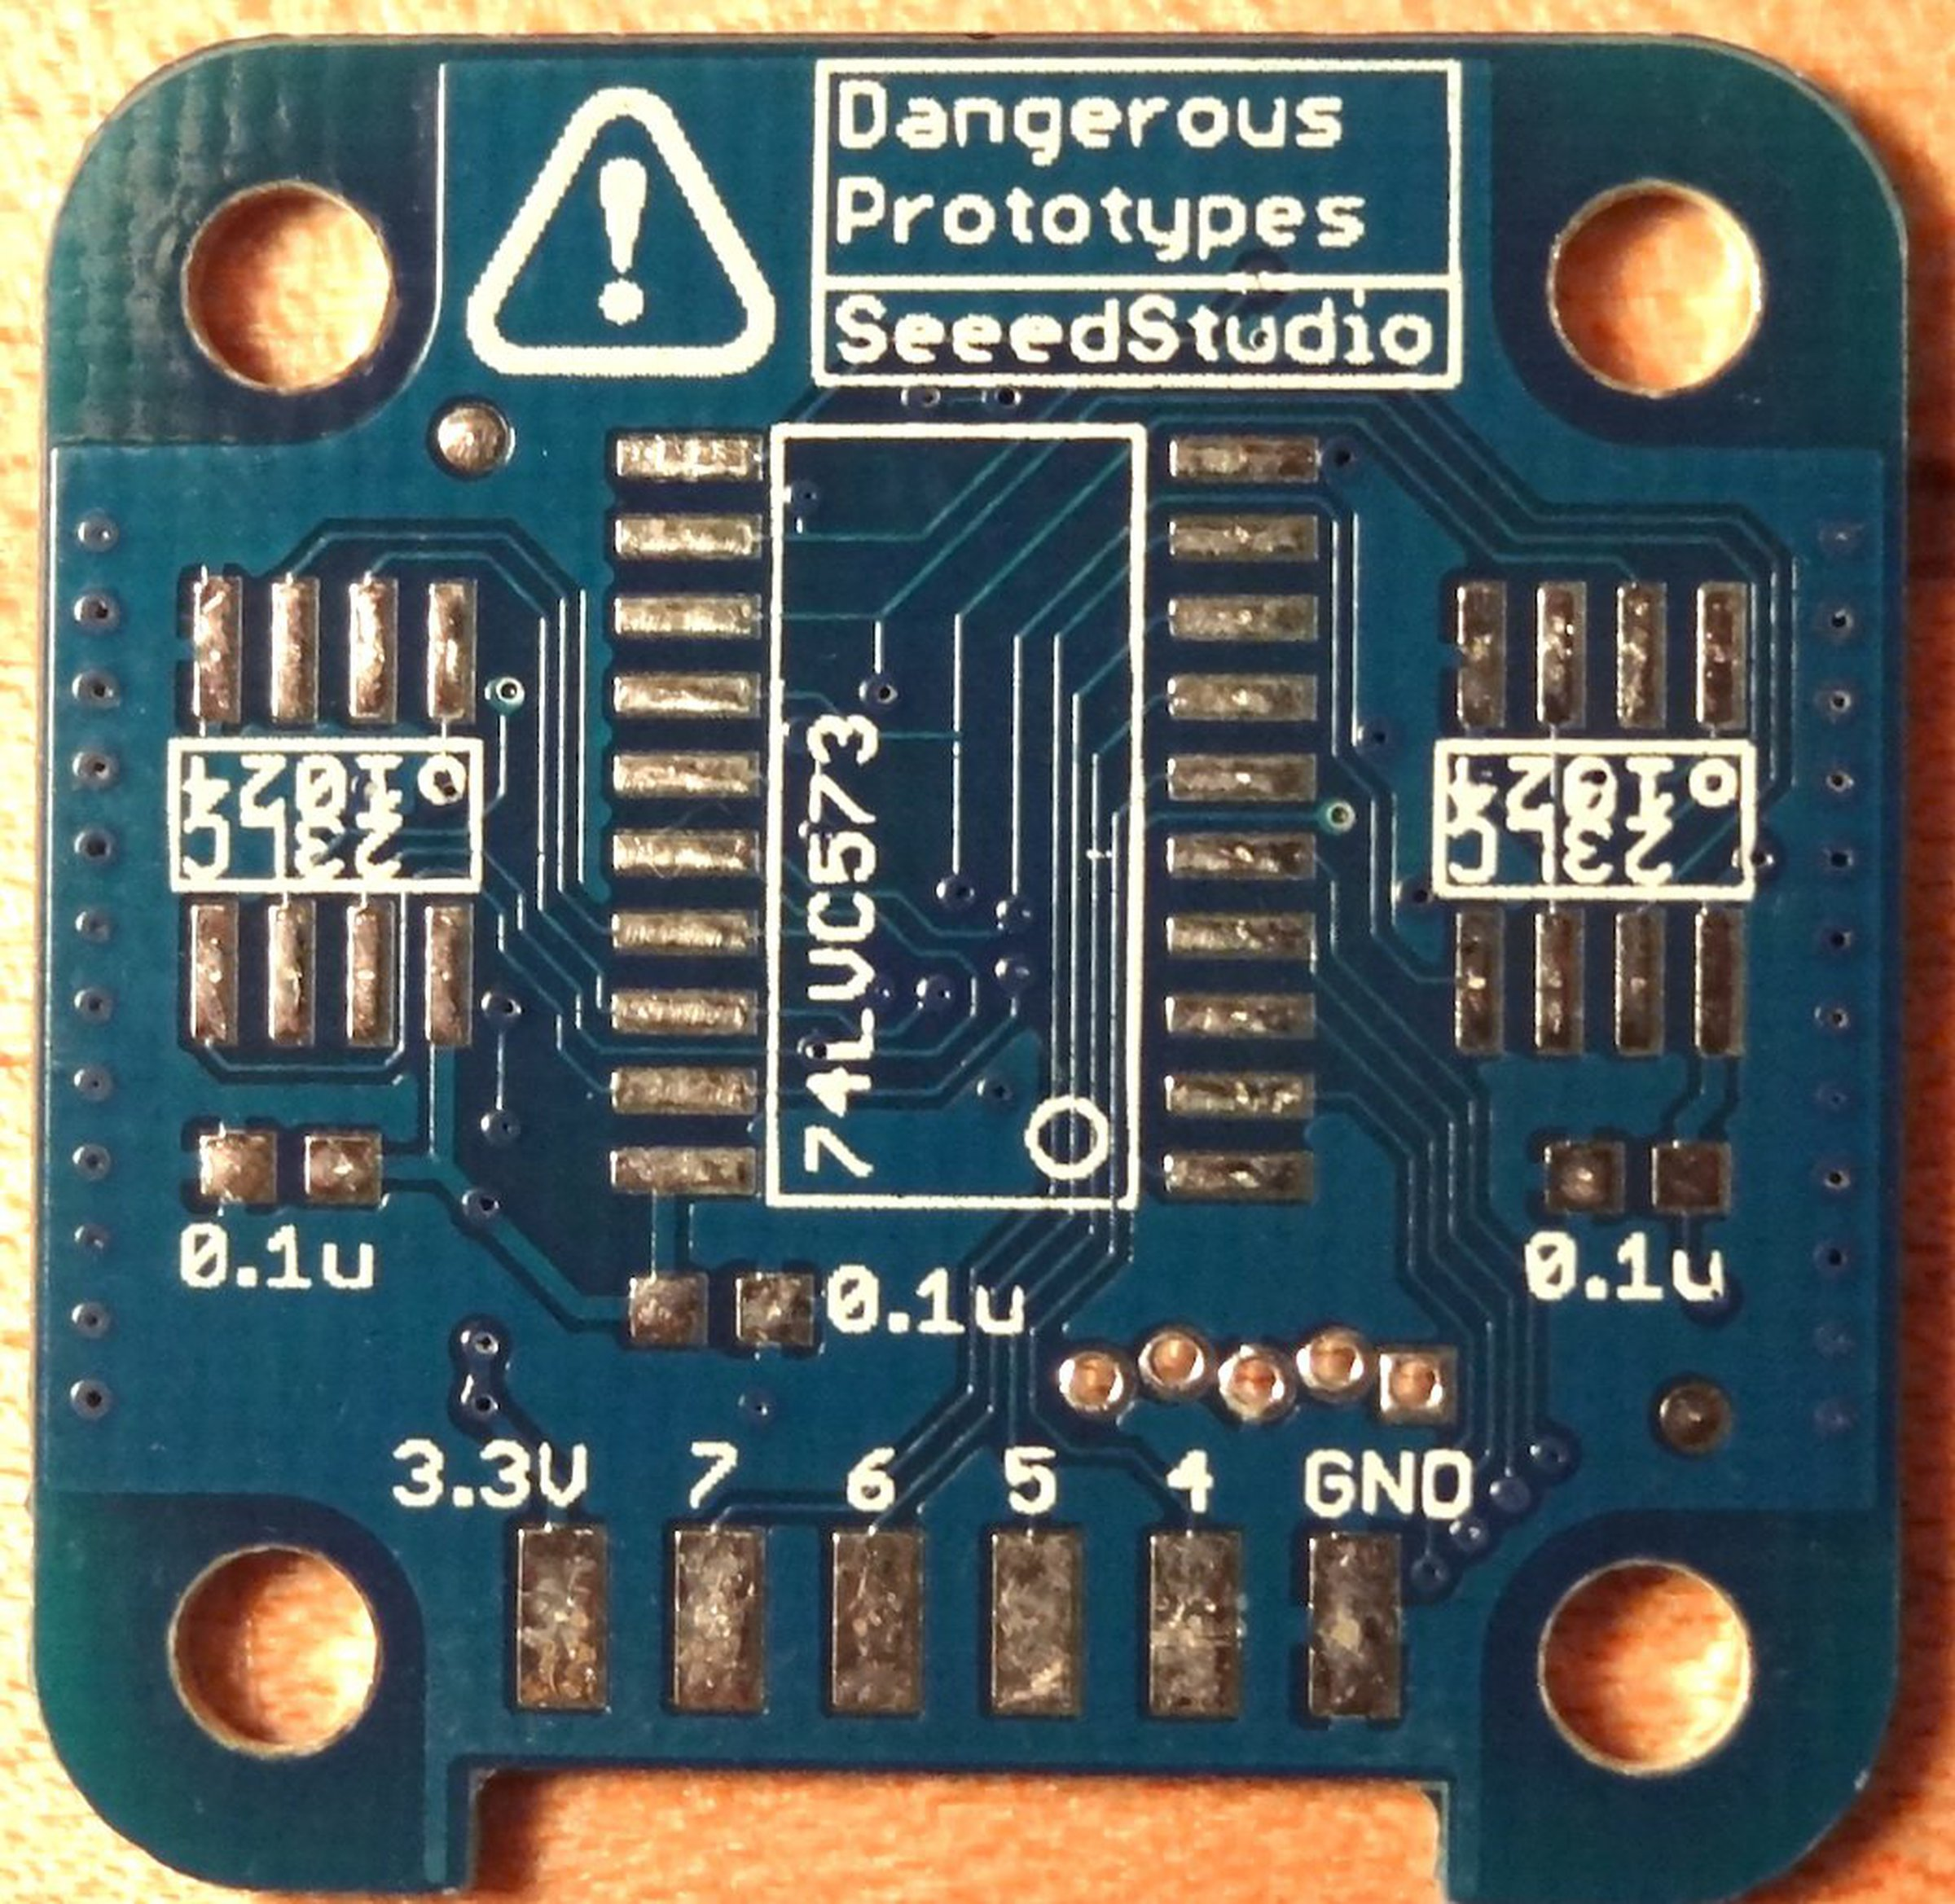 Logic Pirate Dangerous Prototypes Pcb Only From Tomkeddie On Tindie Circuit Board Maker Buy Printed Makerpcb 1